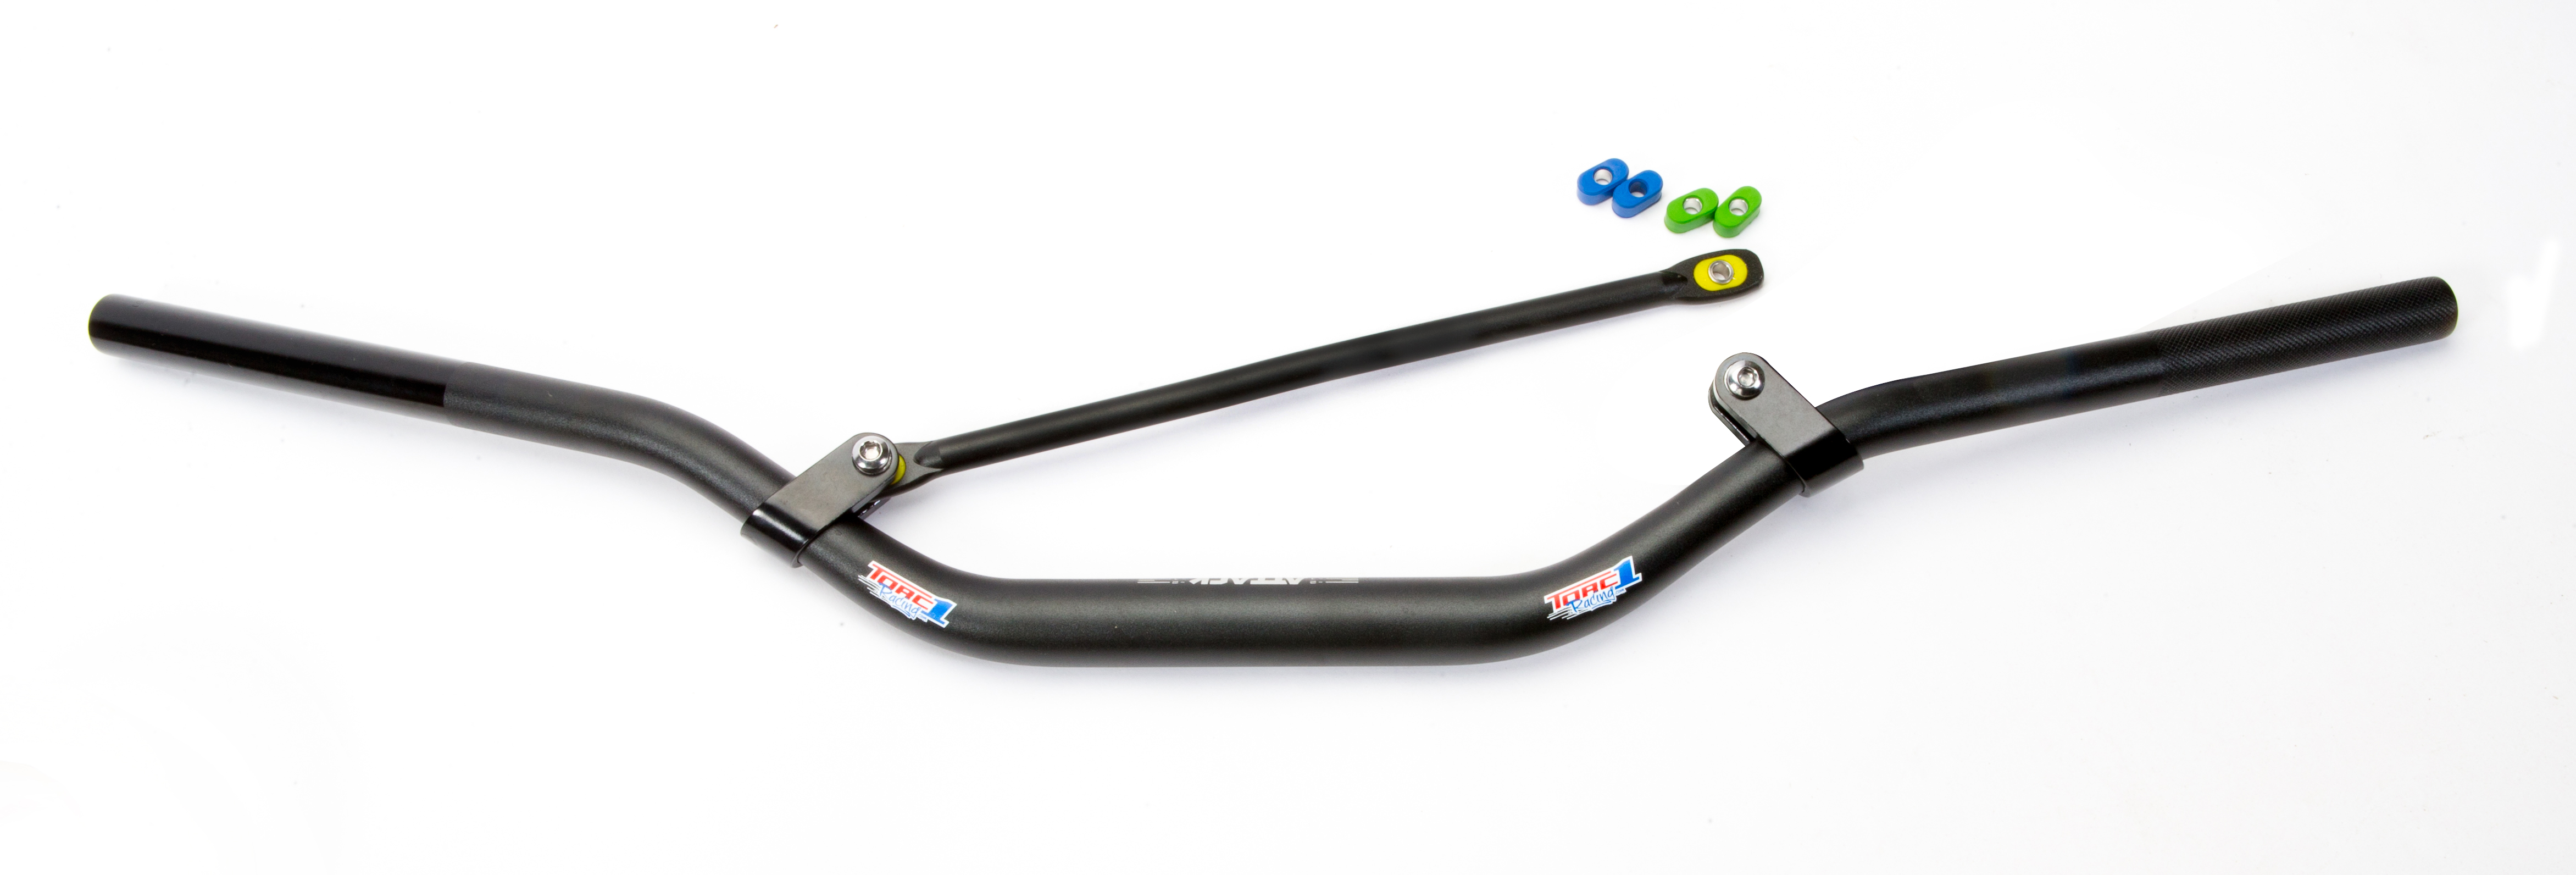 feature product  torc1 racing attack oversize flex crossbar handlebars